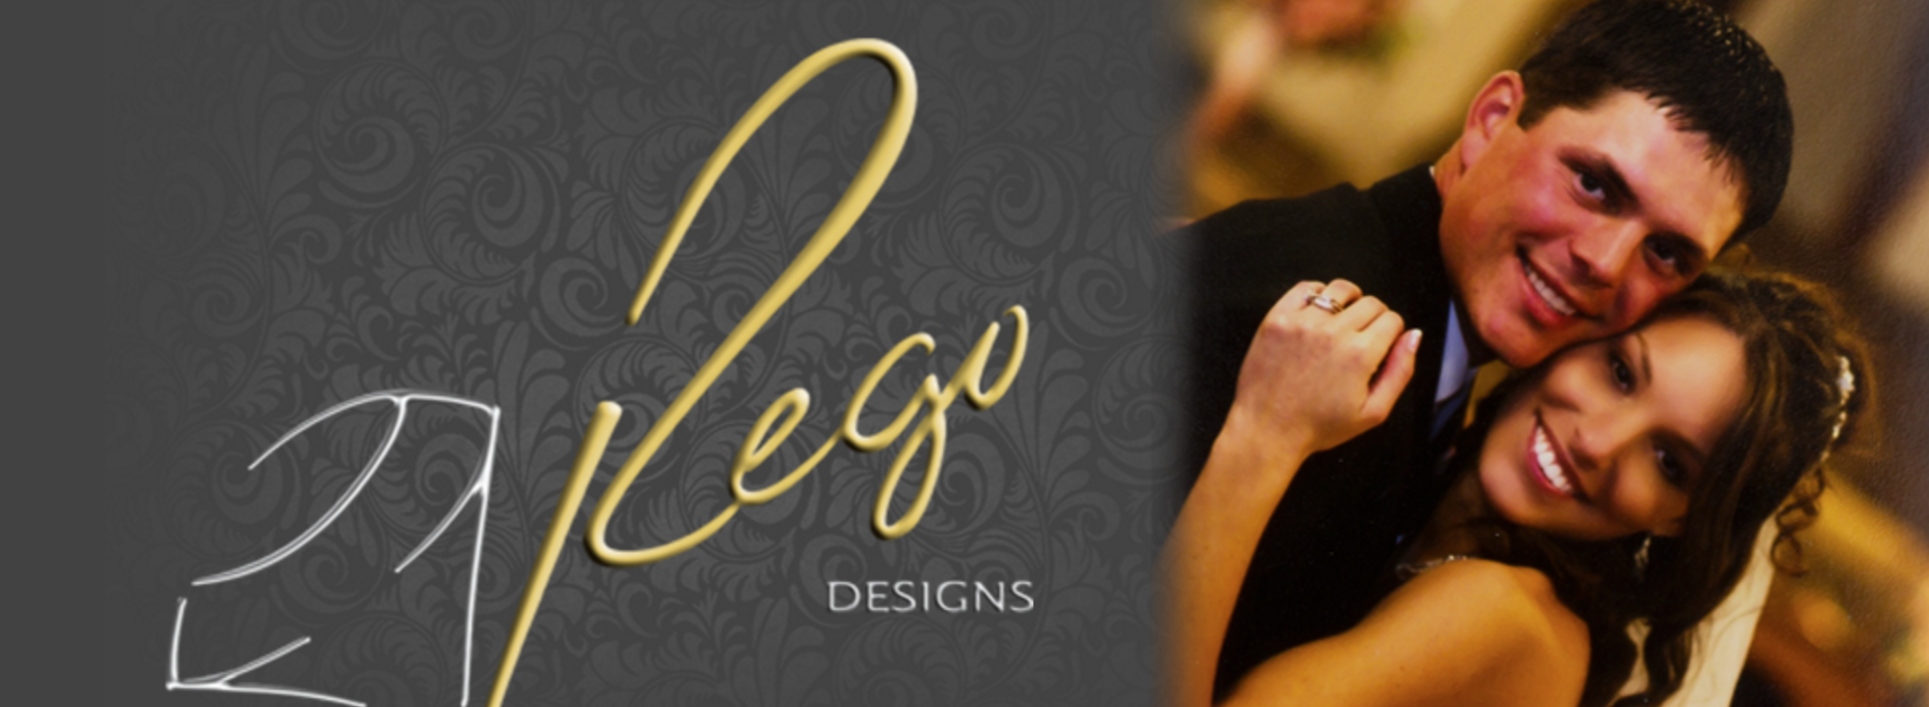 White Jewelers Rego Designs